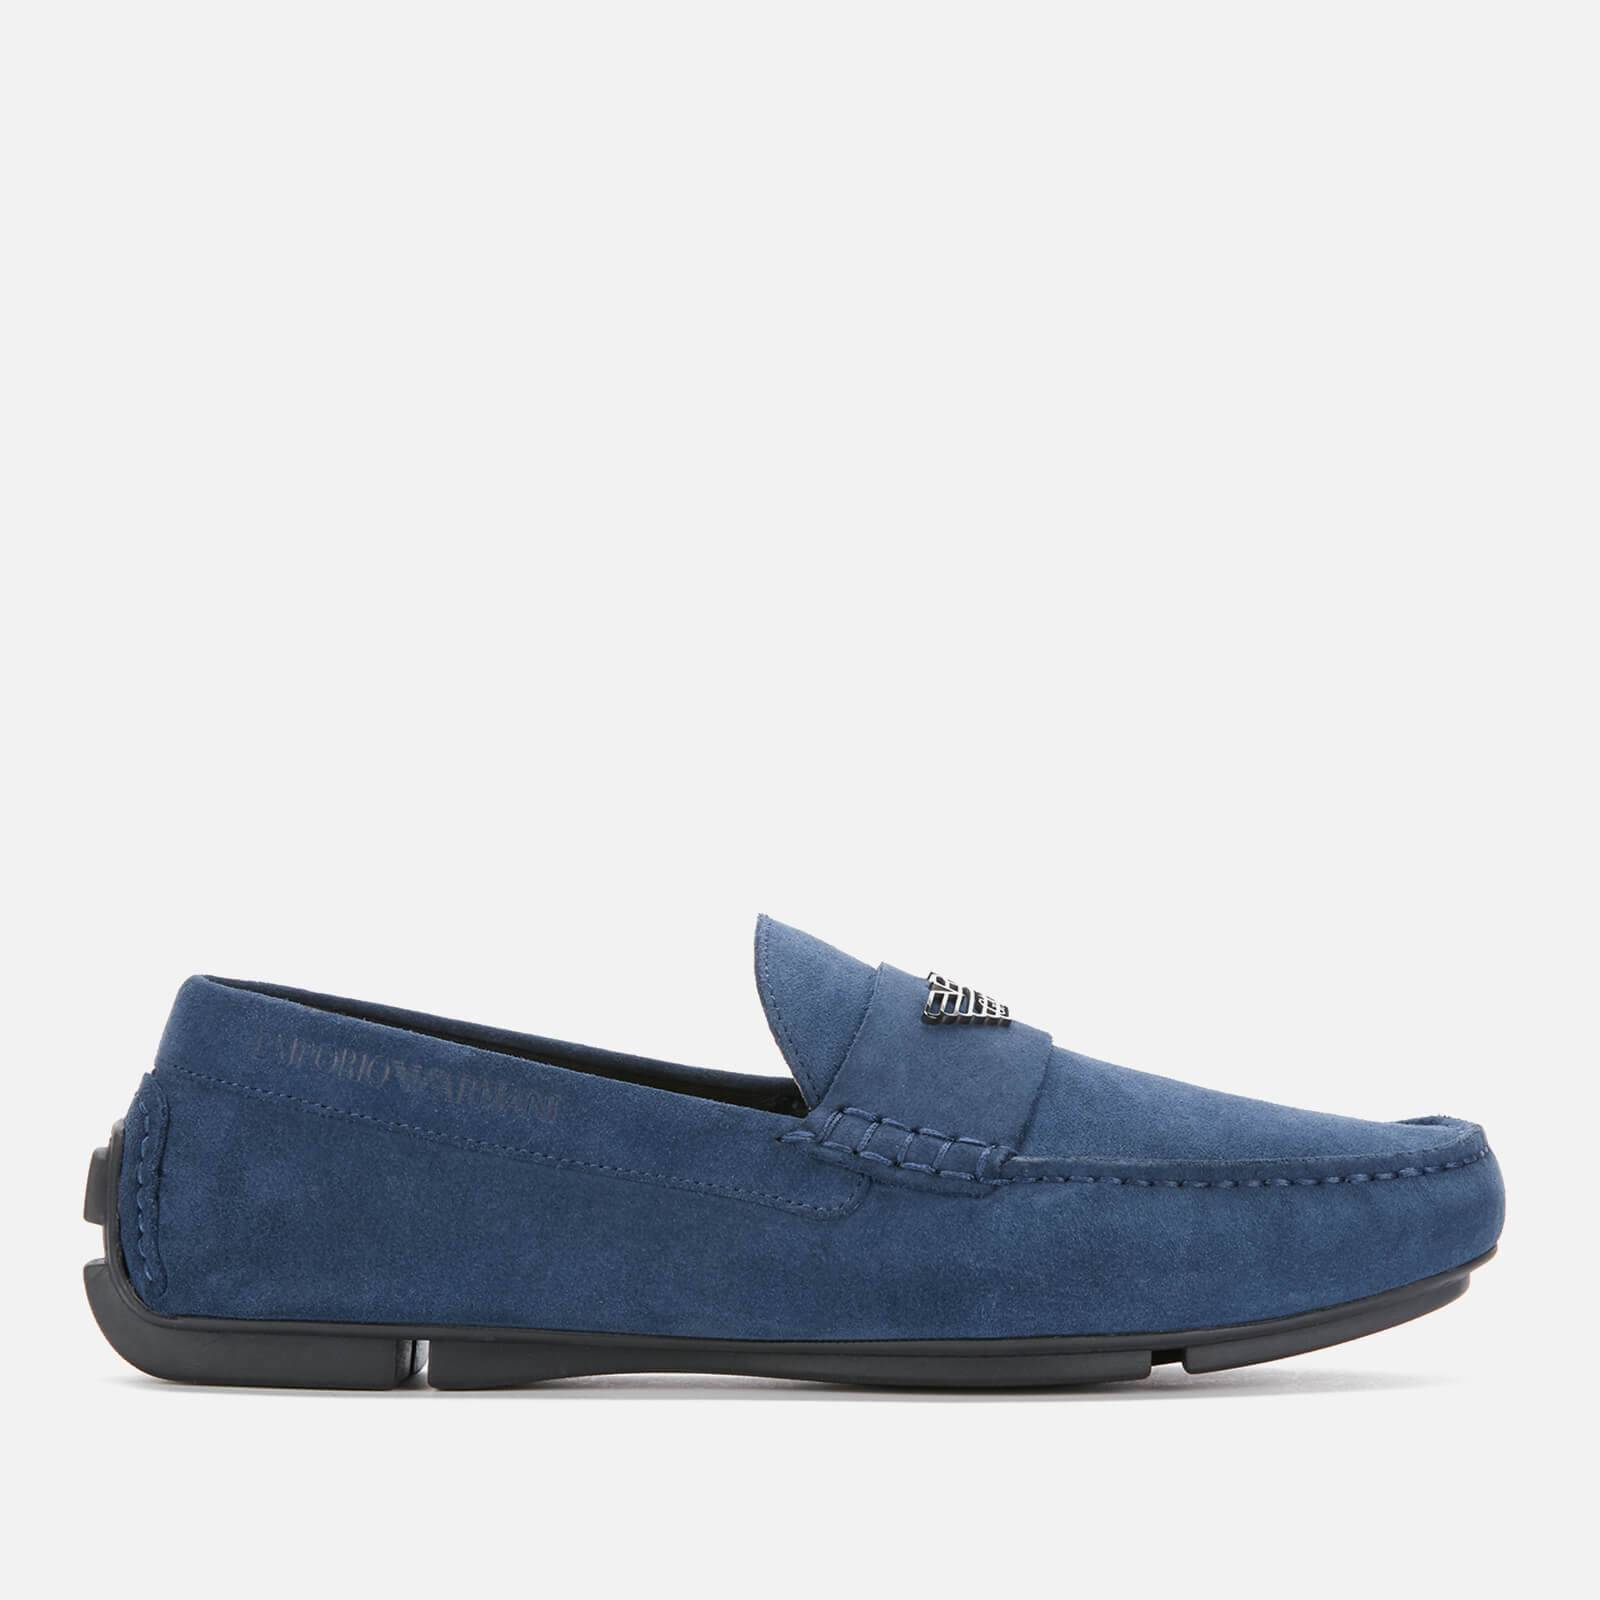 Emporio Armani s Suede Driving Shoes - Midnight - EU 42/UK 8 - Blue